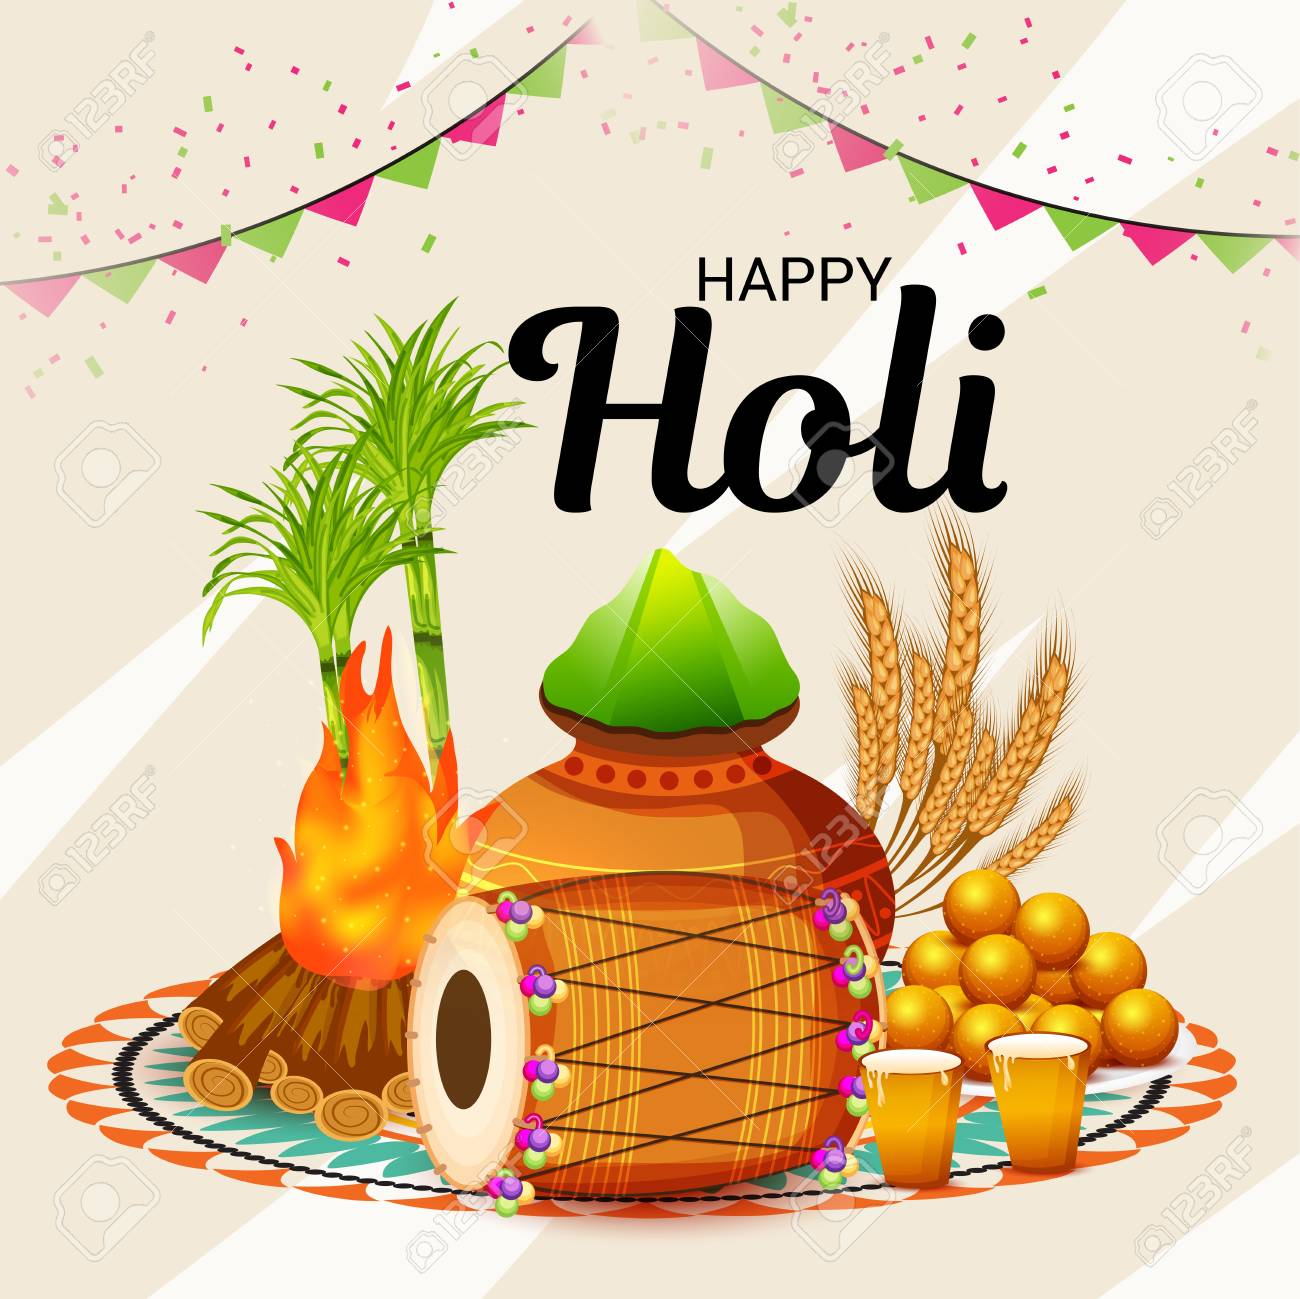 Happy holi greeting card template royalty free cliparts vectors happy holi greeting card template stock vector 95741018 m4hsunfo